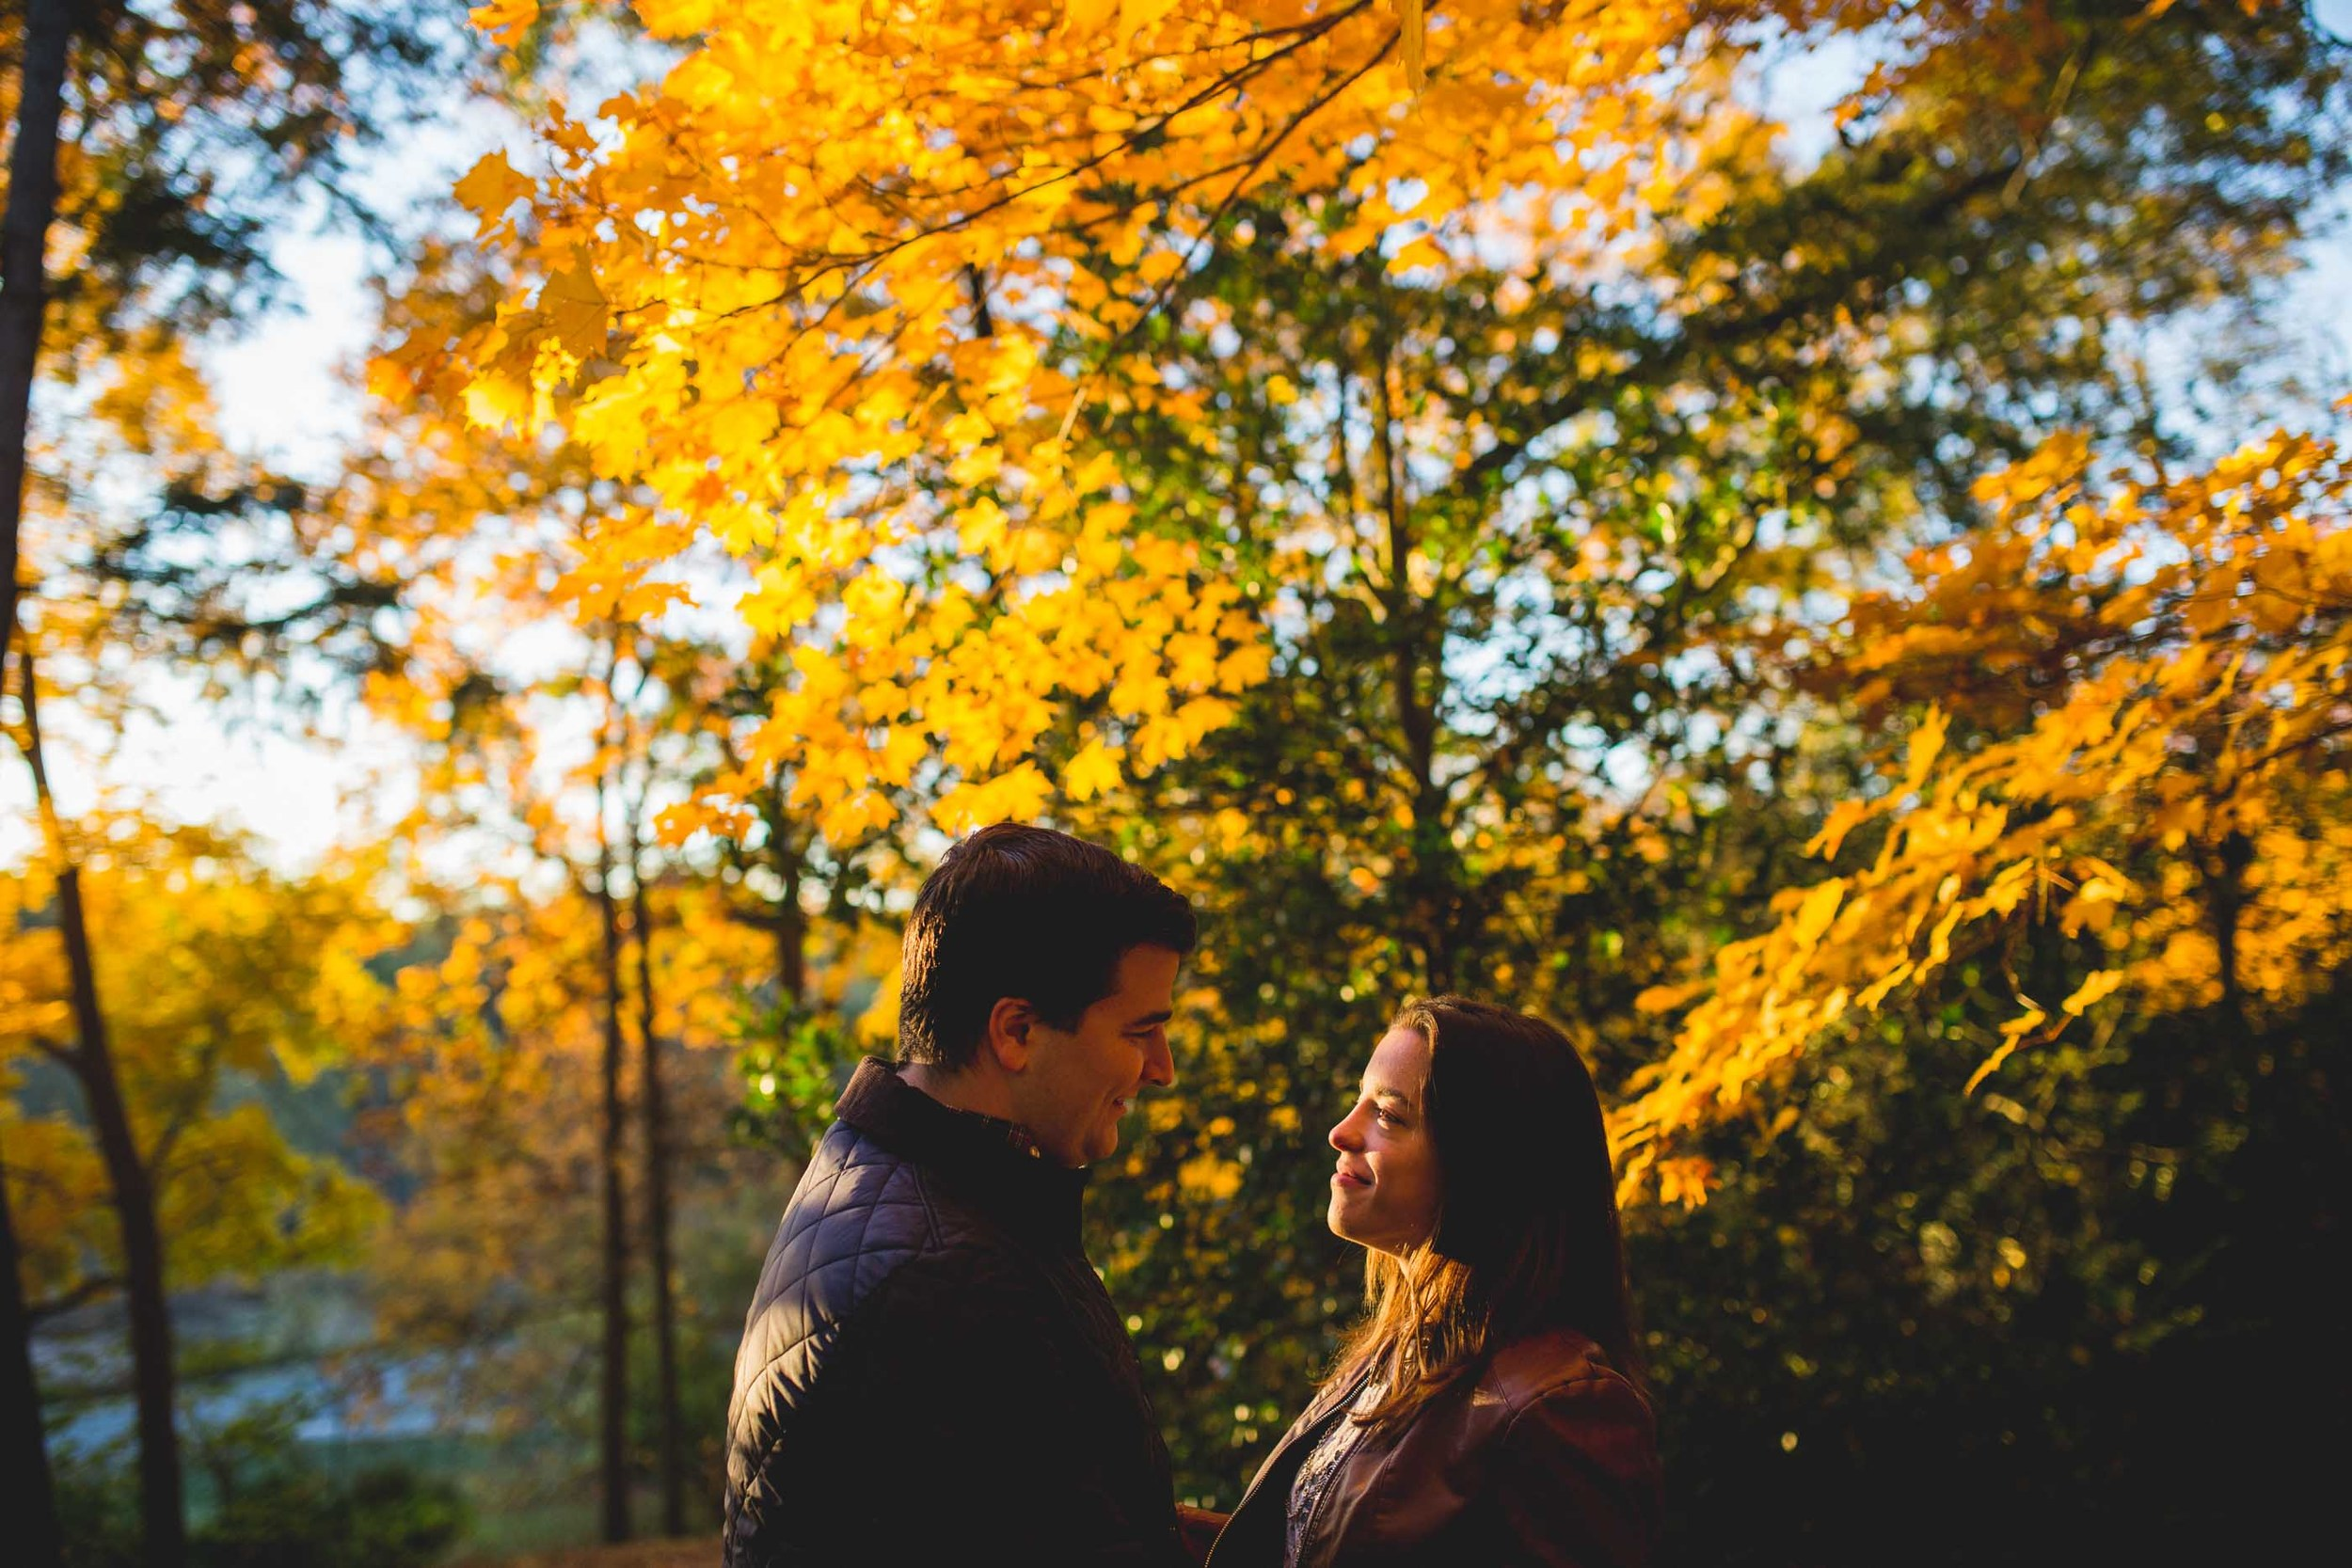 Arboretum-Engagement-Photographer-1.jpg